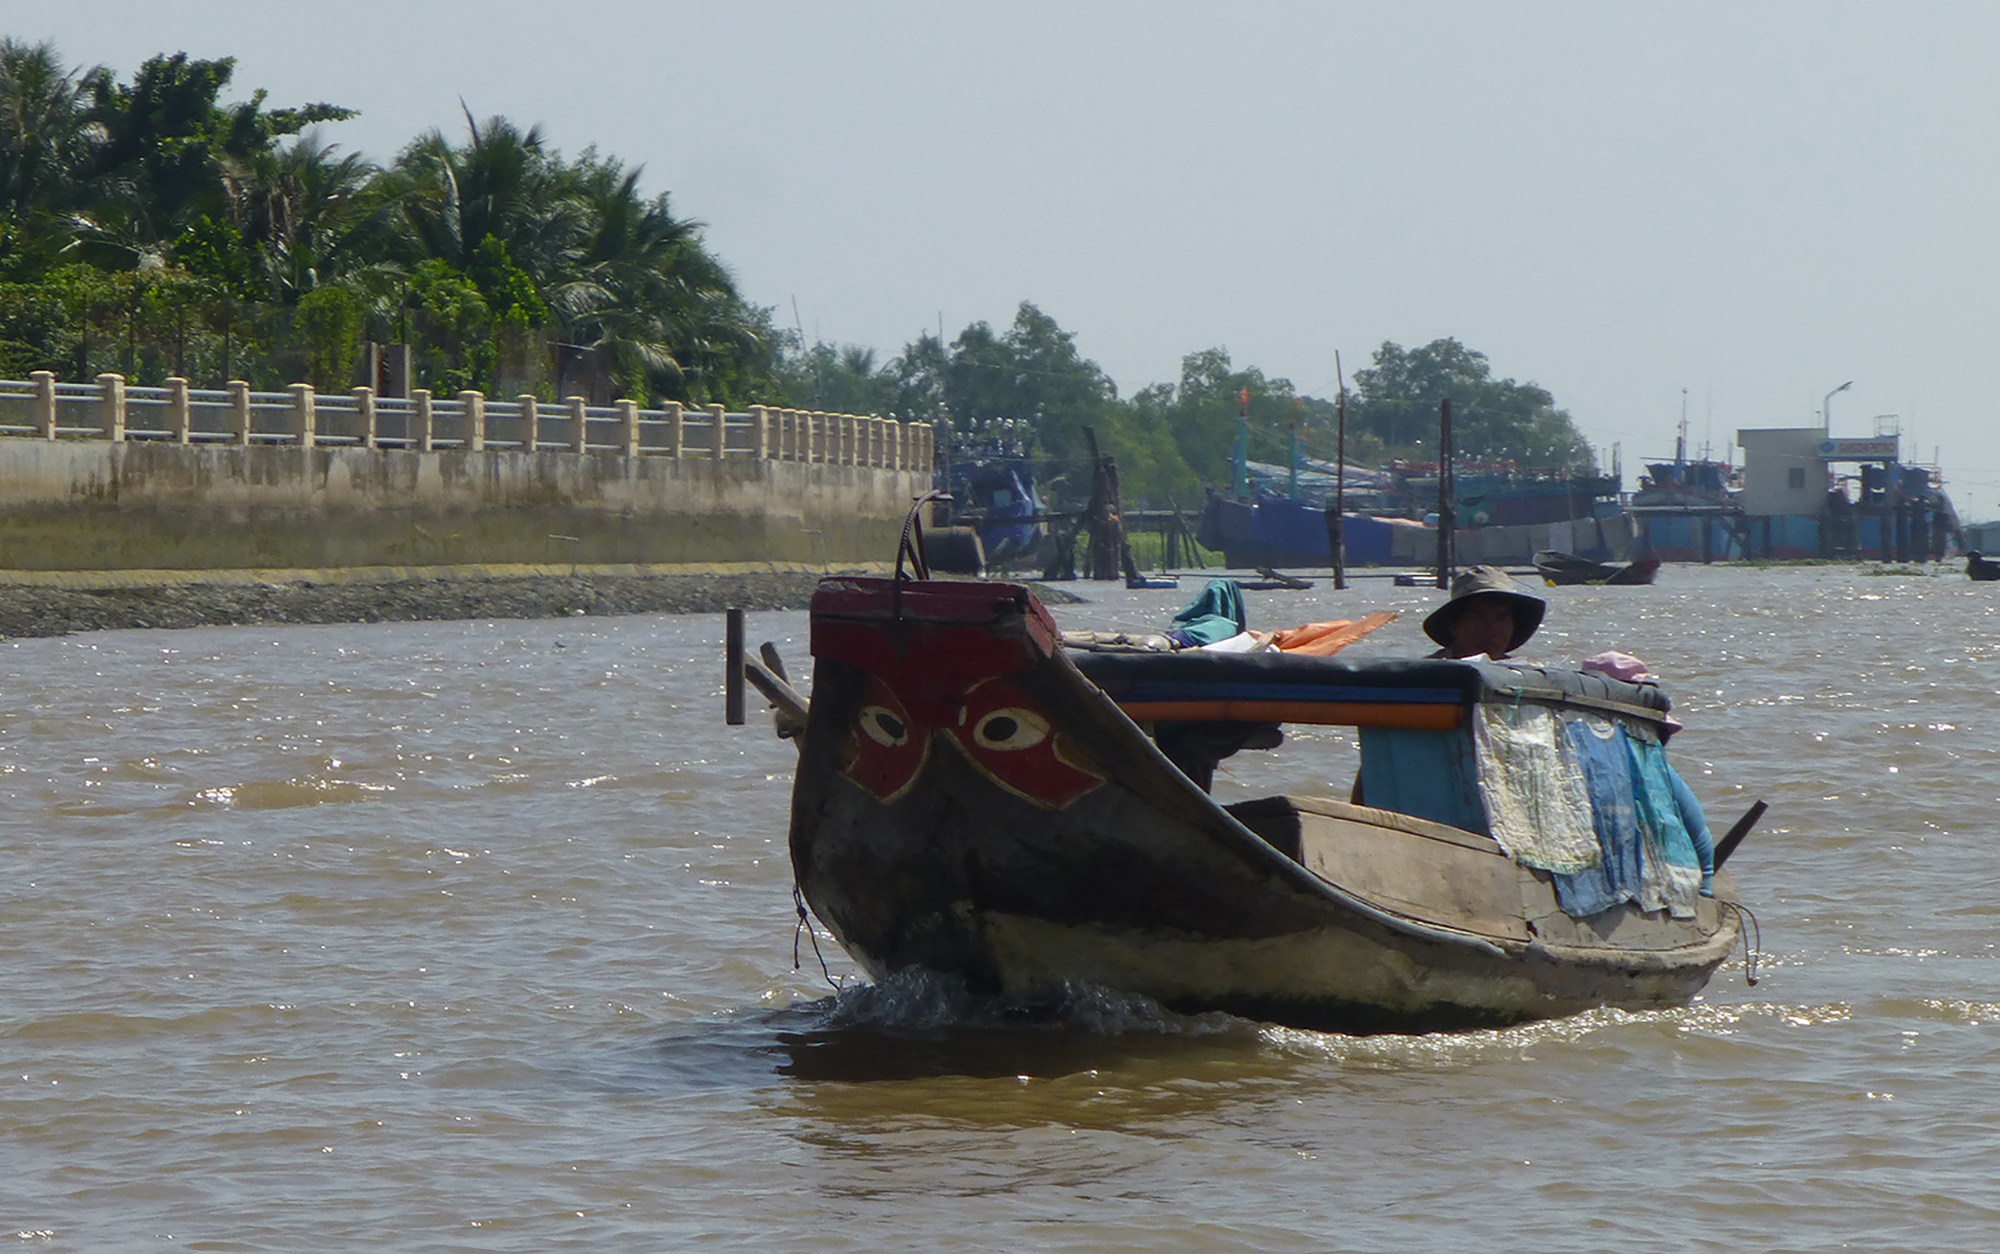 Mekong eyes painted on a boat. Copyright: Erica Gies.